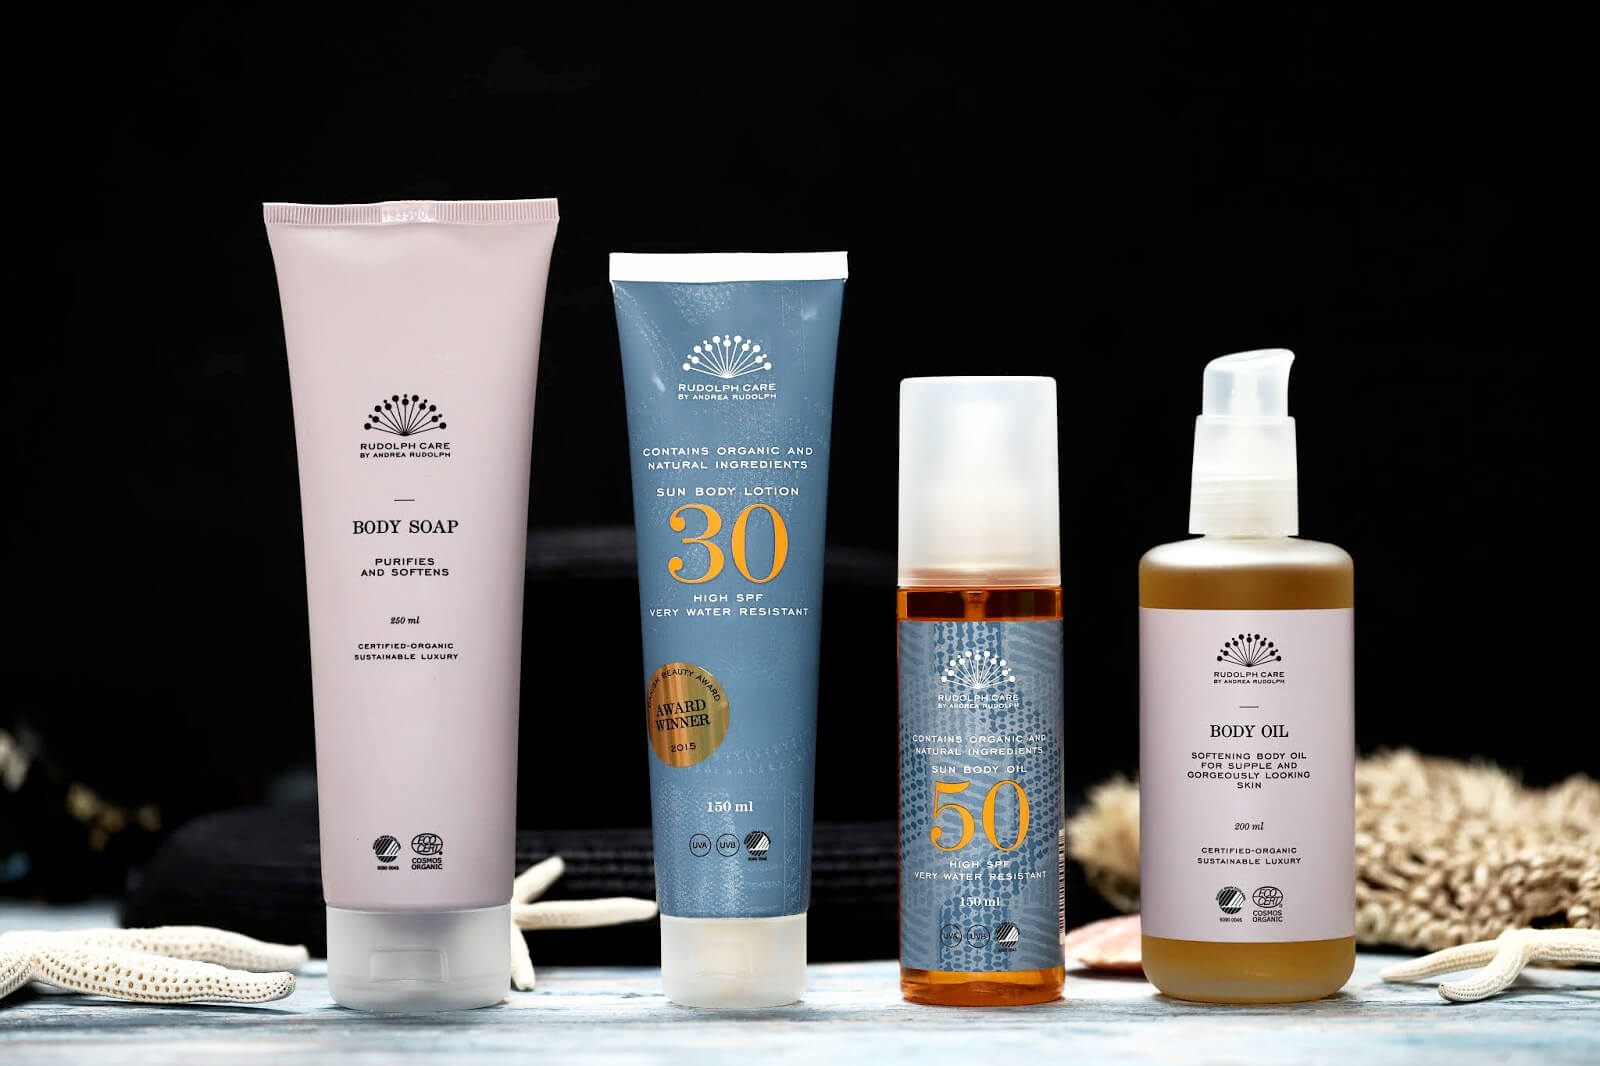 rudolph care soins solaires huile corps avis